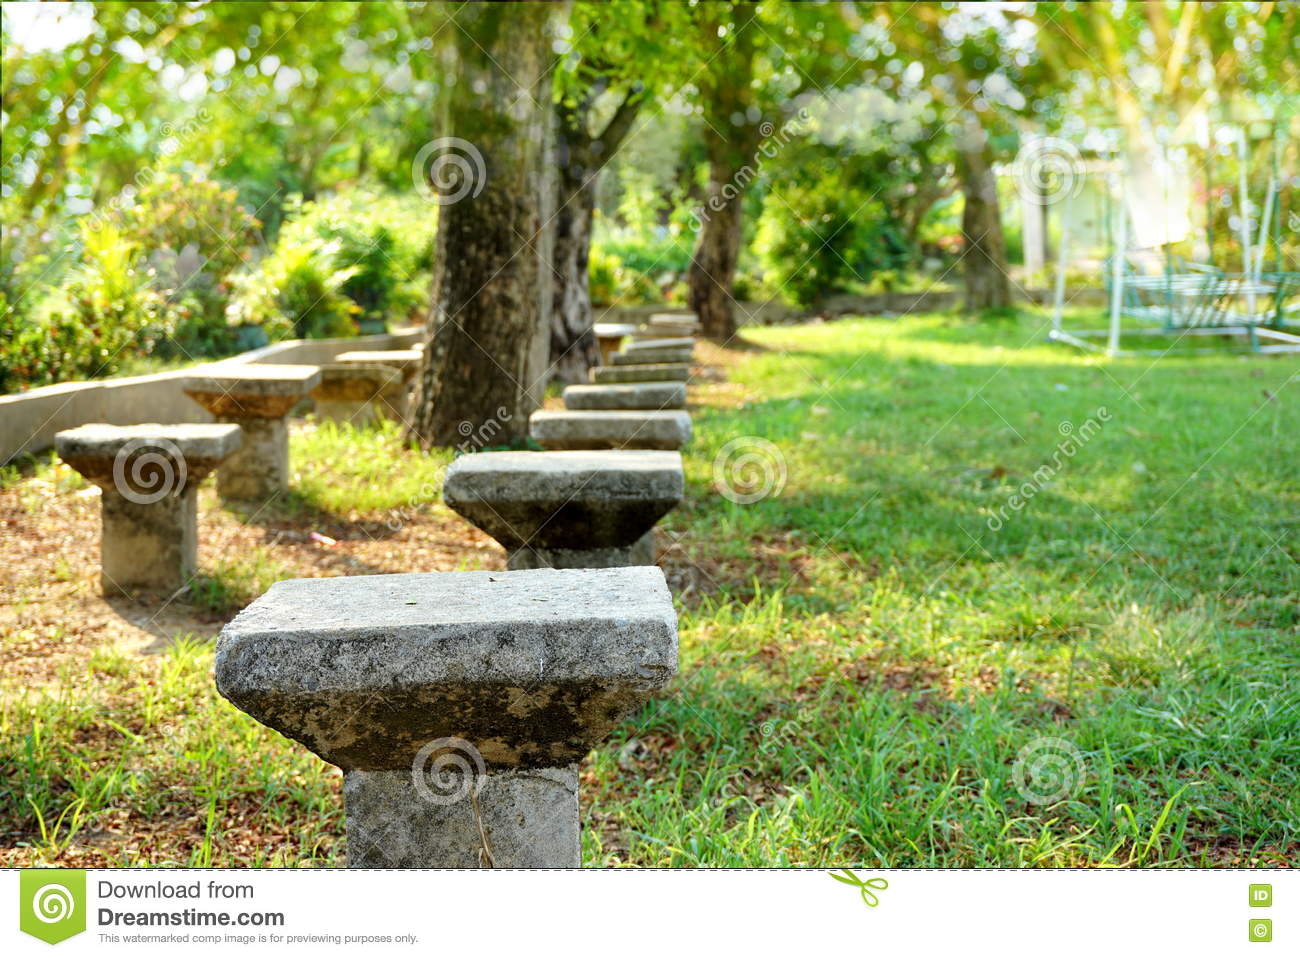 Cement Chair In A Park green Nature Playground Stock Image